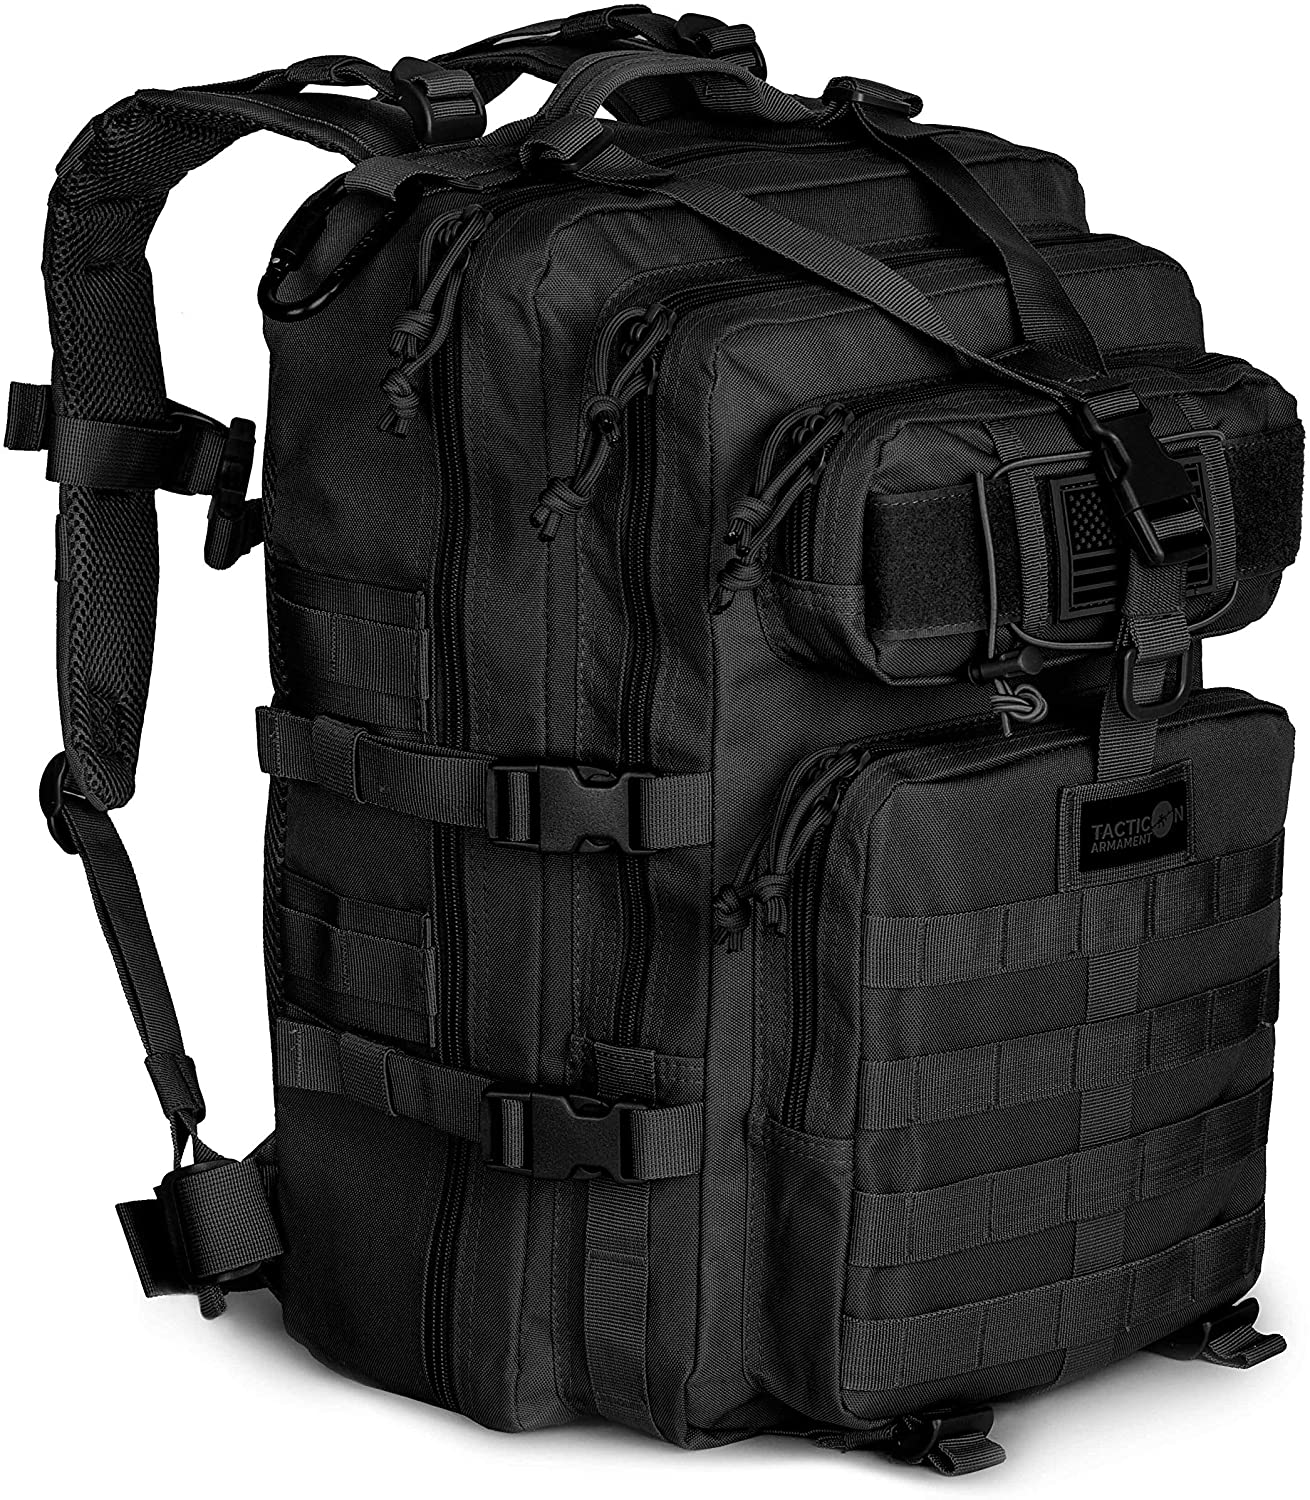 thetenthub.com: 24BattlePack Tactical Backpack | best hunting backpack in 2021